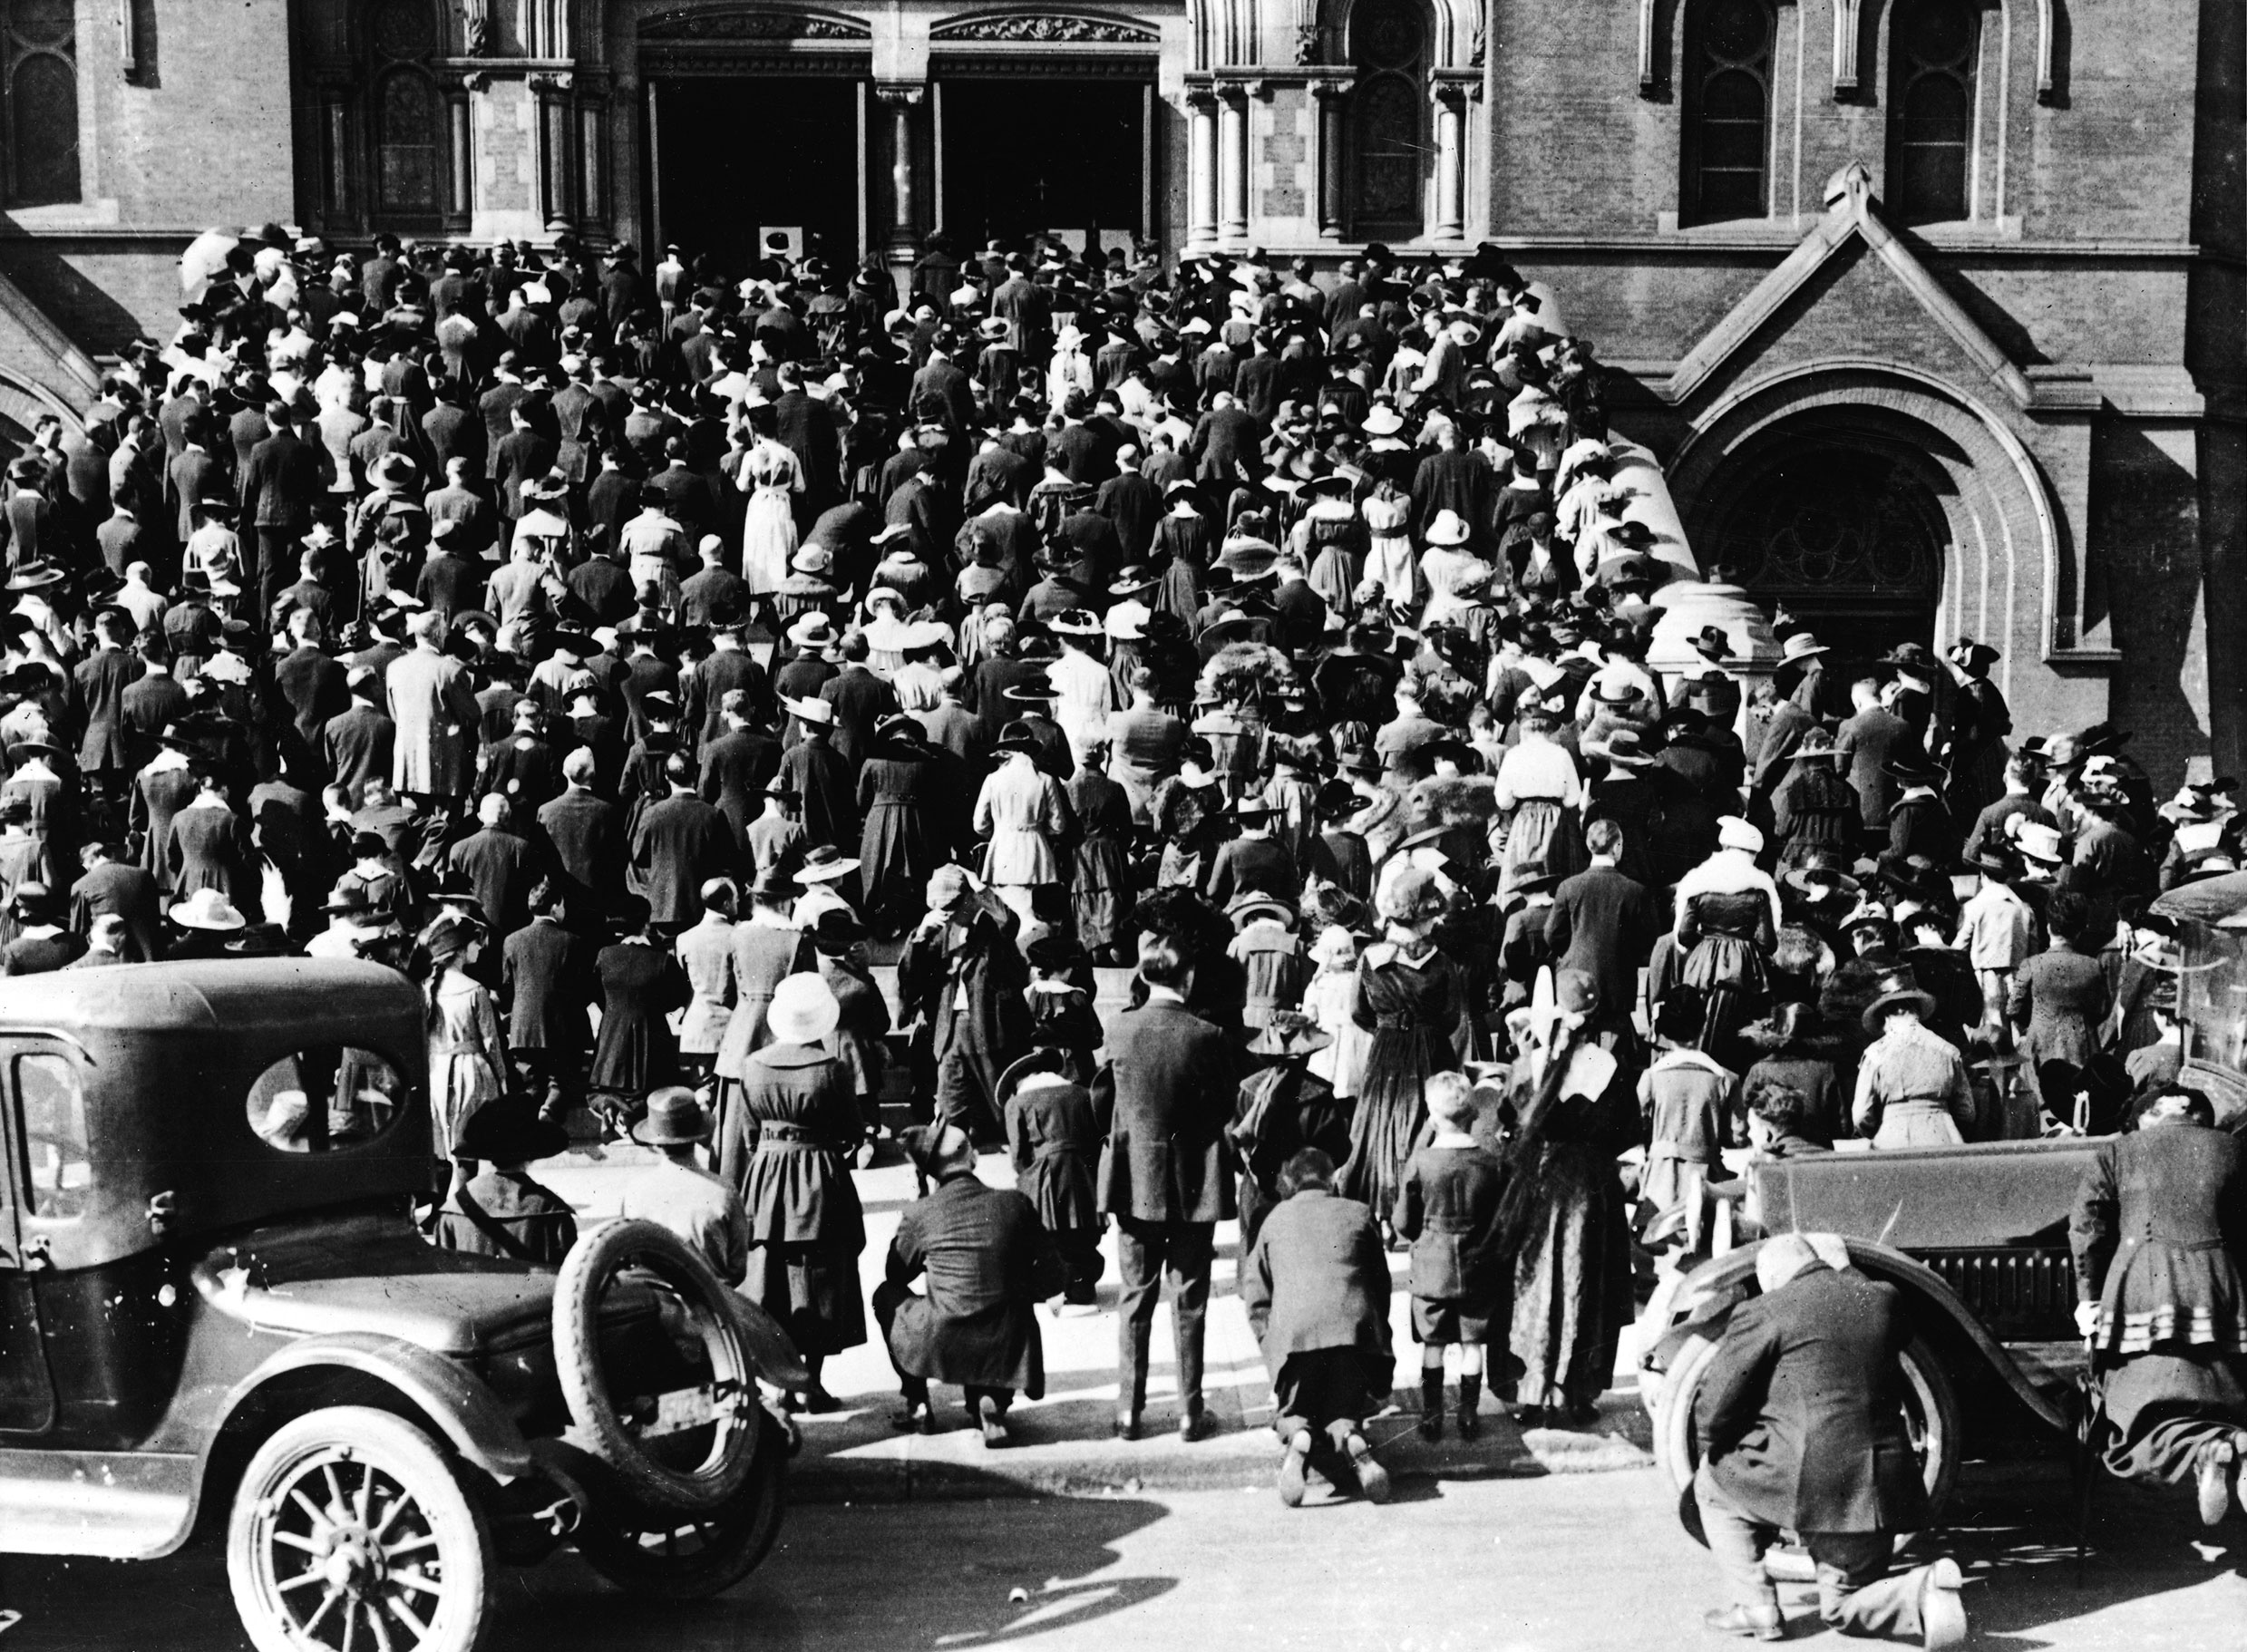 San Francisco: The congregation of the Cathedral of Saint Mary of the Assumption praying on the steps, where they gathered to hear mass and pray during the influenza pandemic of 1918.